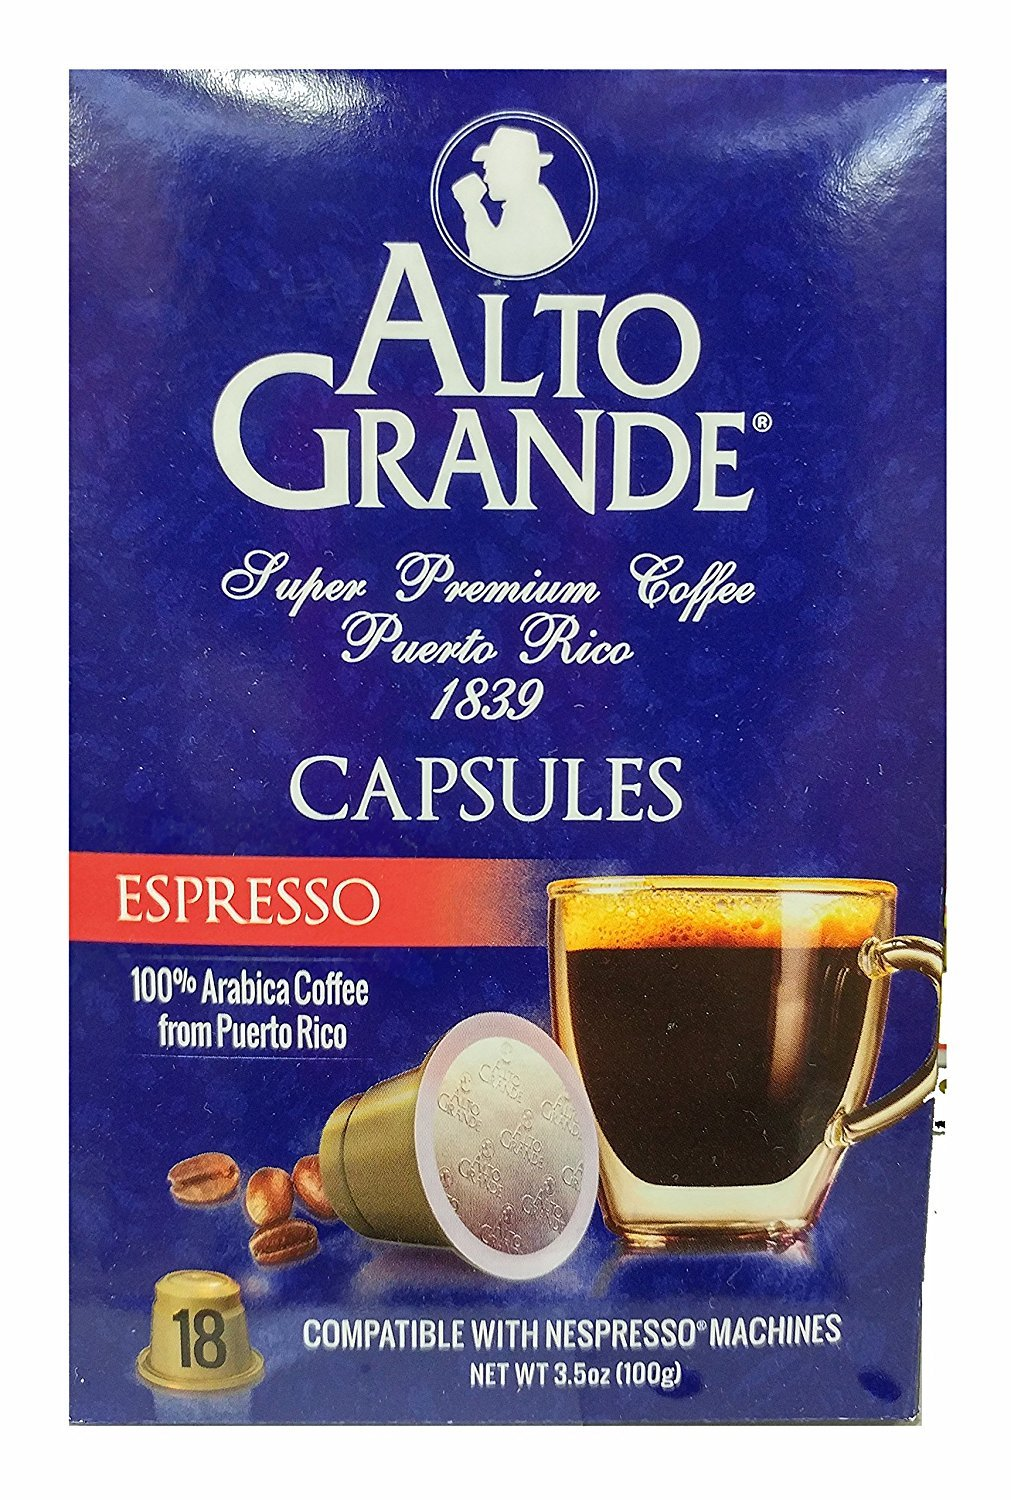 ALTO GRANDE Coffee Caps Nesprsso Comp, 3.5 OZ